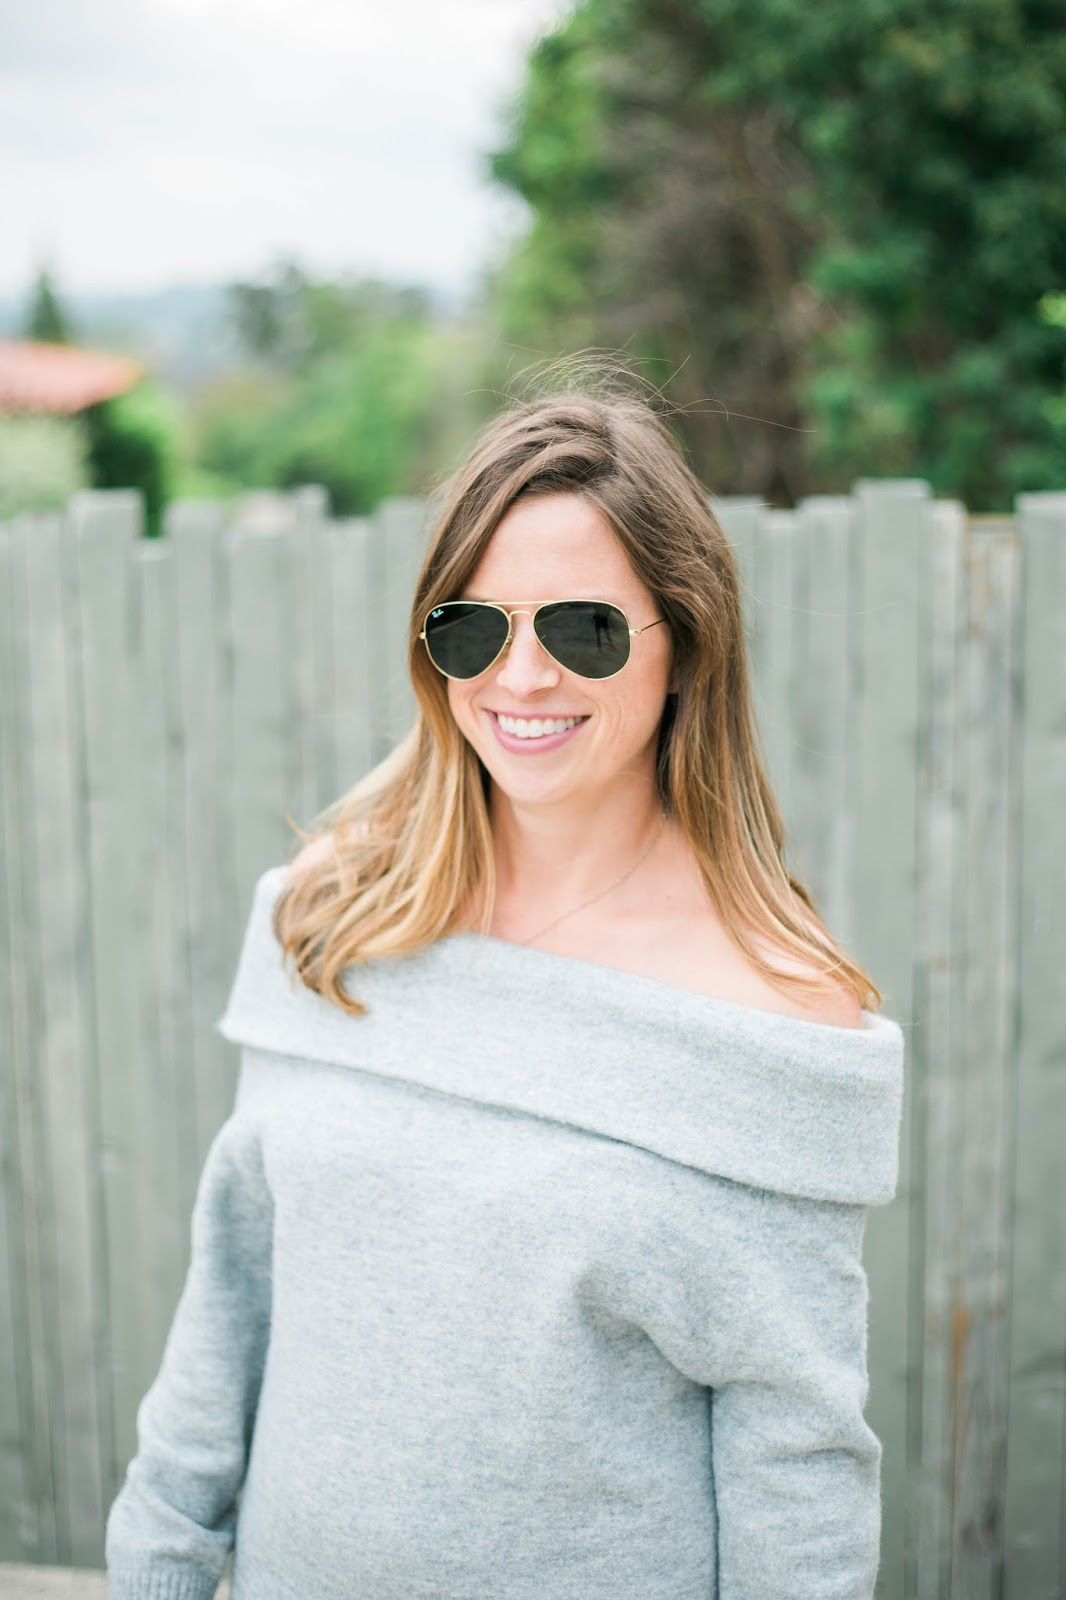 off the shoulder sweater and sunglasses